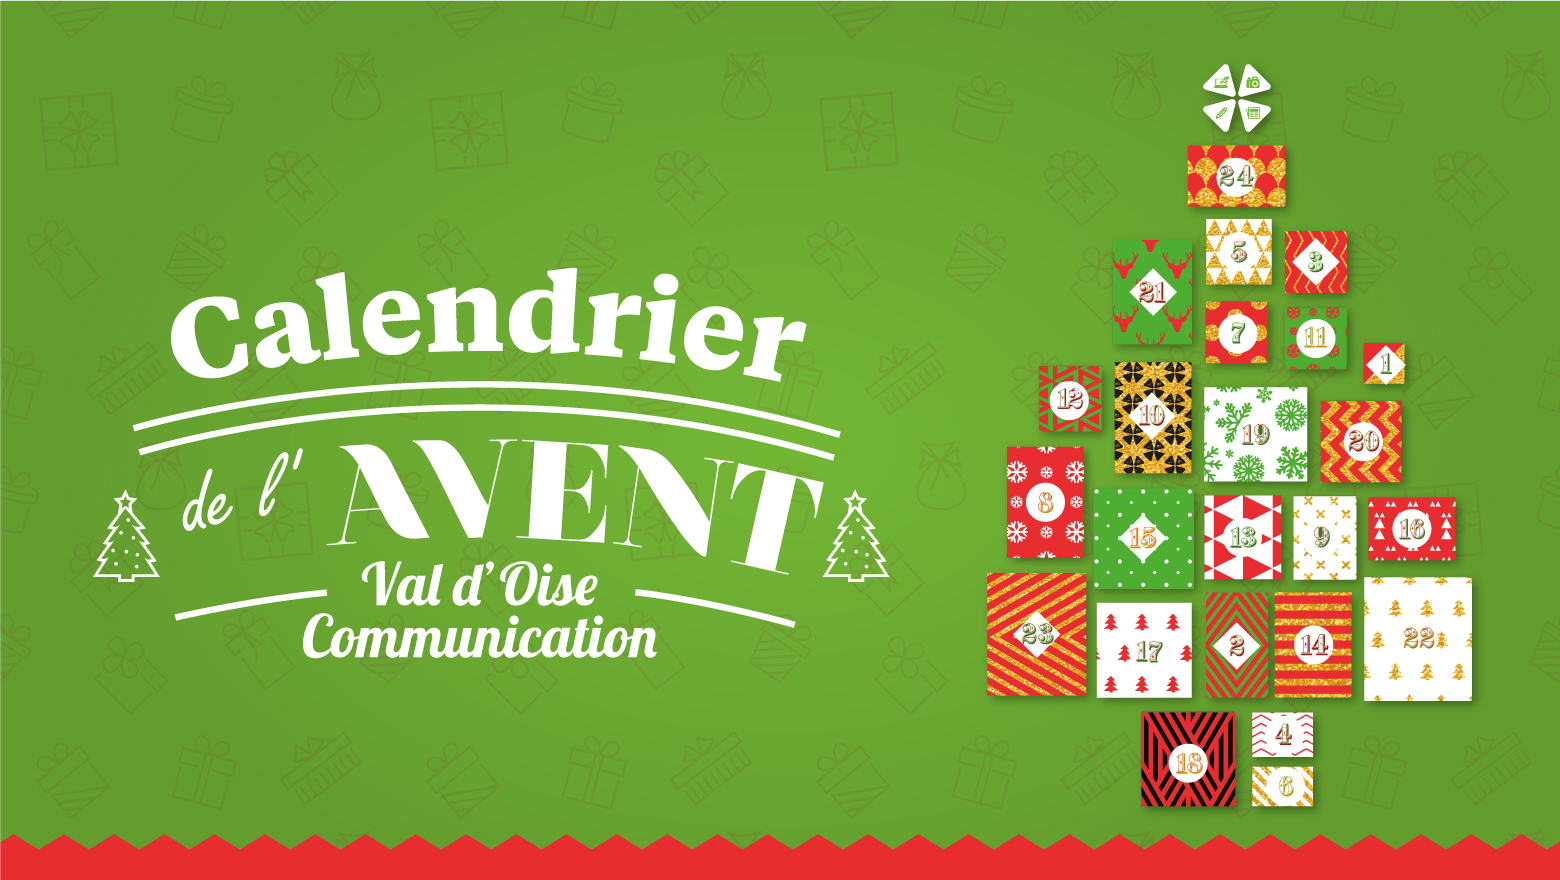 Calendrier de l'Avent Val d'Oise Communication 2019